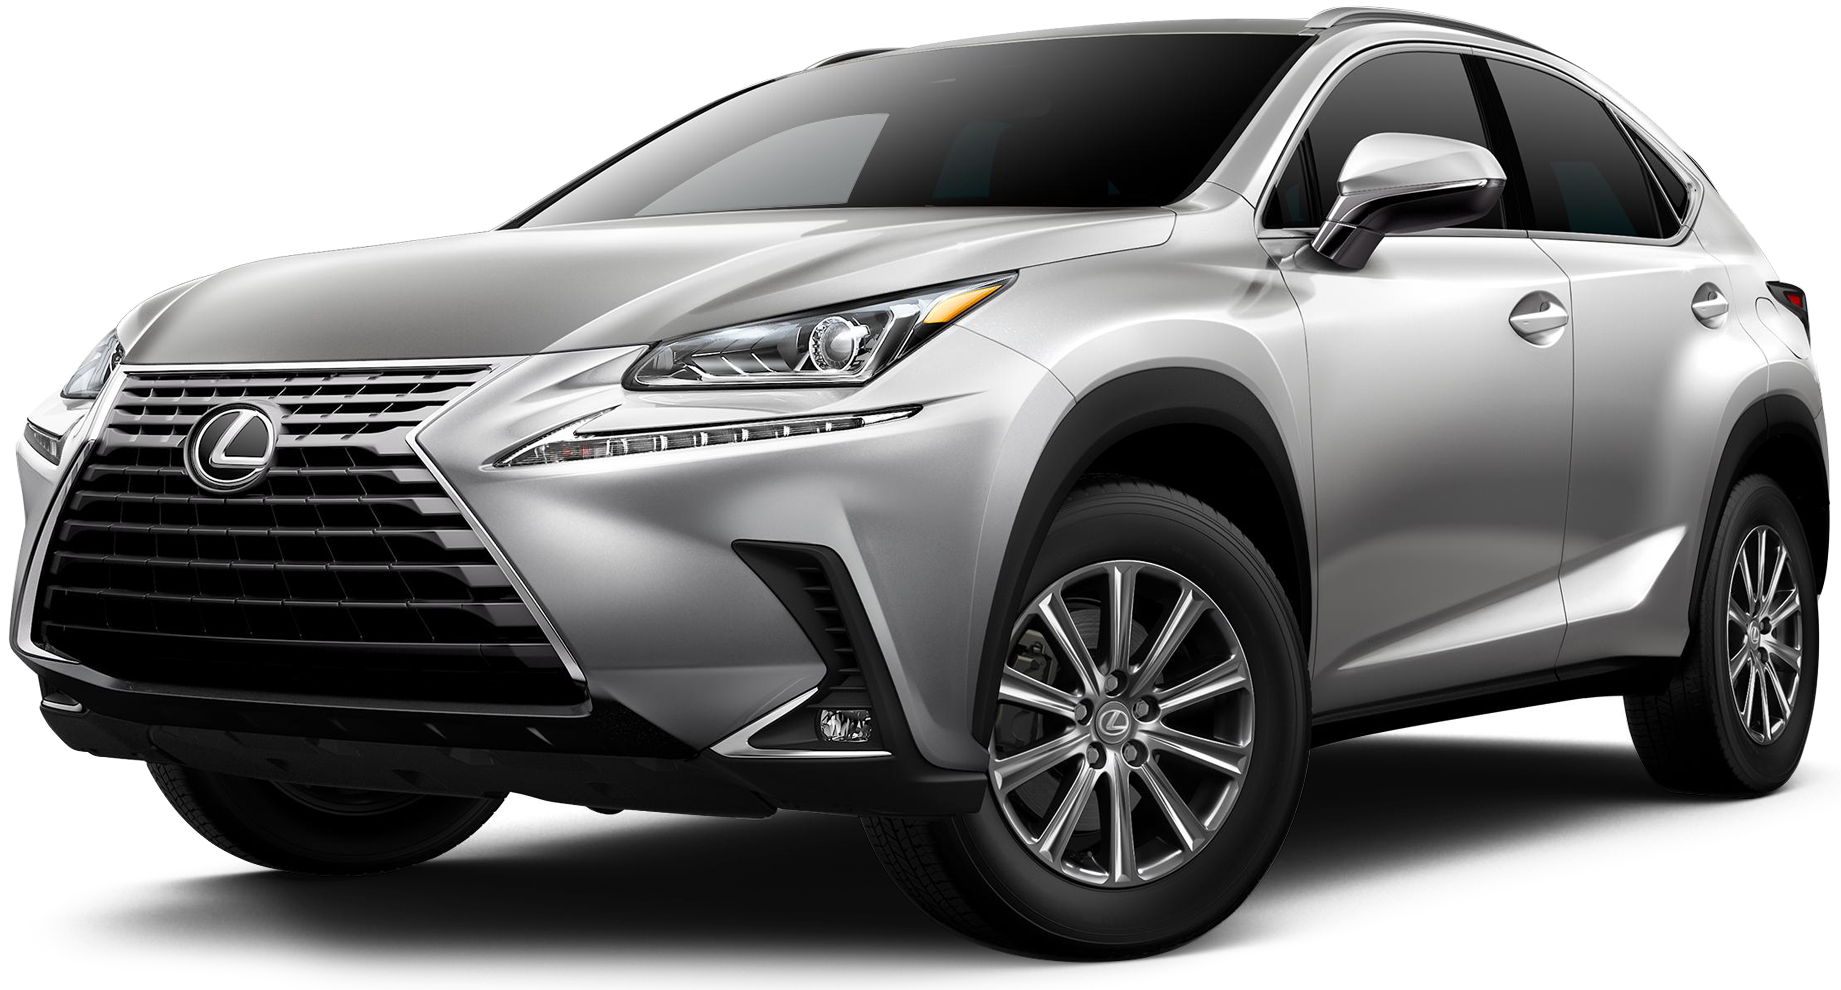 2019 lexus nx 300 incentives  specials  u0026 offers in indianapolis in